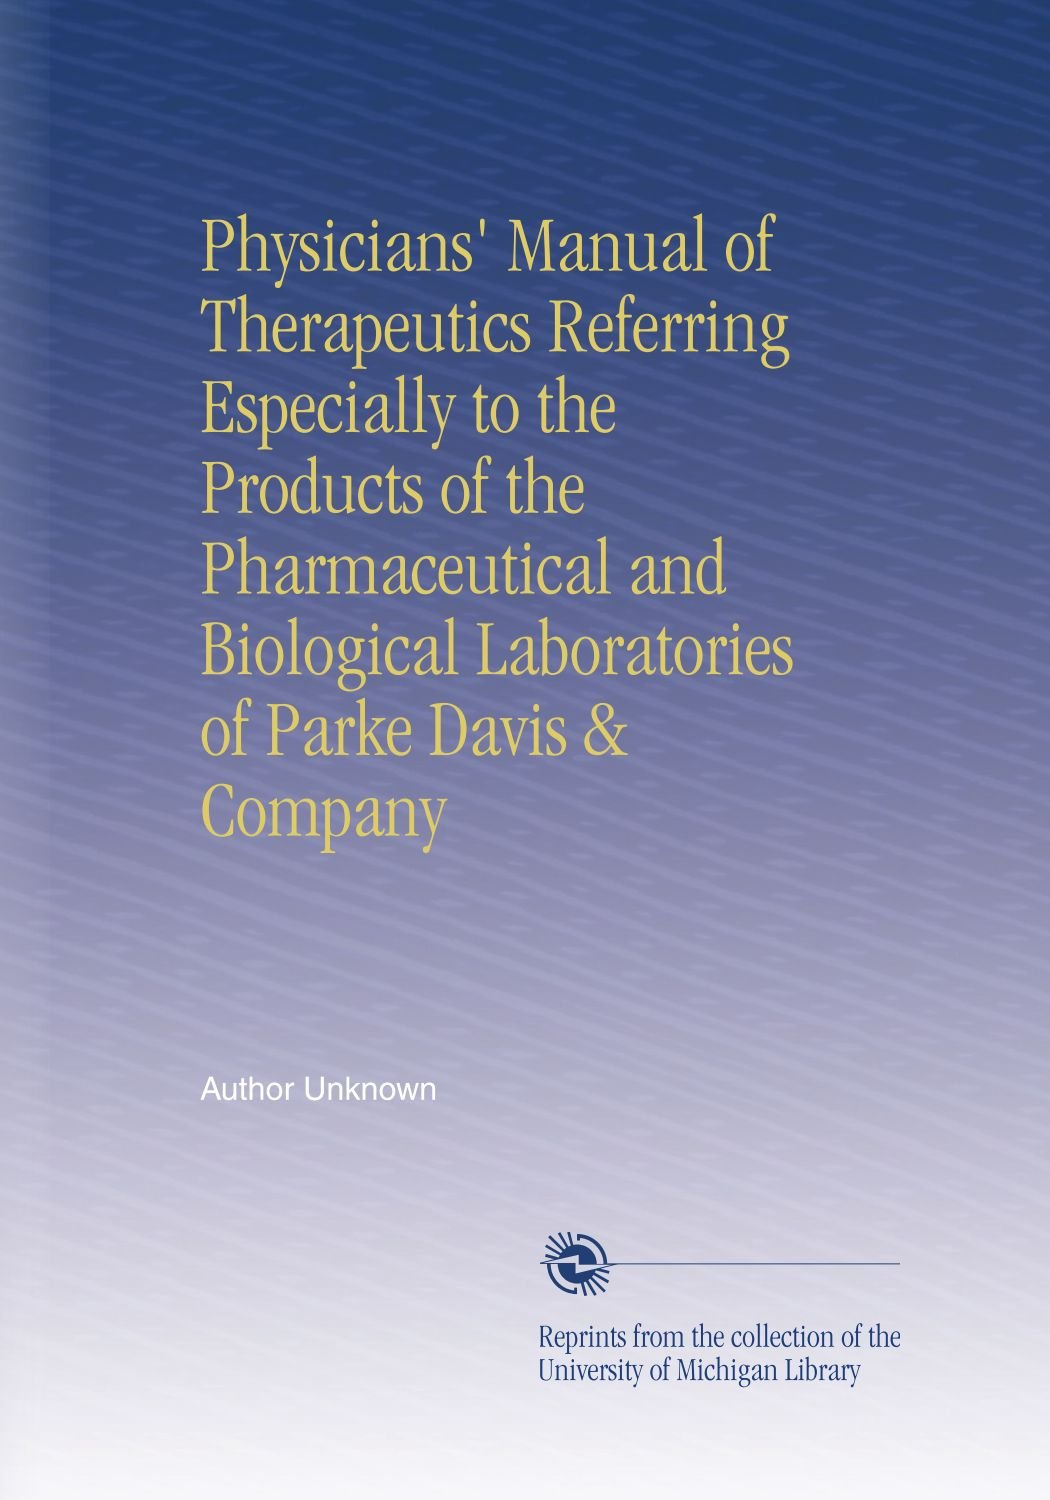 Physicians' Manual of Therapeutics Referring Especially to the Products of the Pharmaceutical and Biological Laboratories of Parke Davis & Company PDF